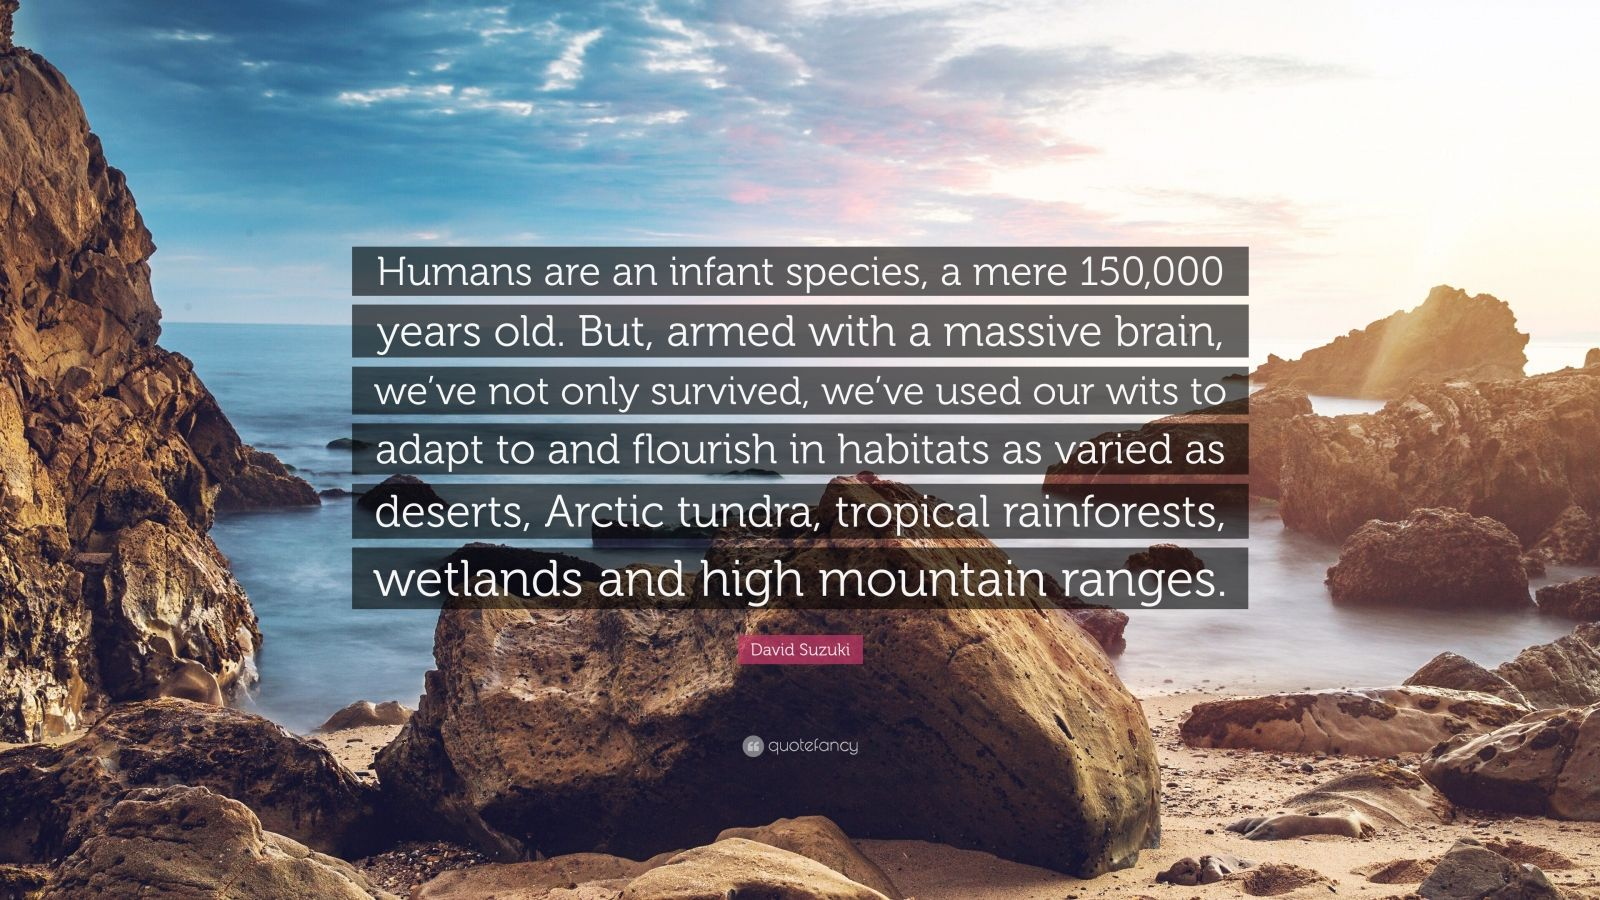 """David Suzuki Quote: """"Humans are an infant species, a mere 150,000 years old. But, armed with a massive brain, we've not only survived, we've used our wits to adapt to and flourish in habitats as varied as deserts, Arctic tundra, tropical rainforests, wetlands and high mountain ranges."""""""